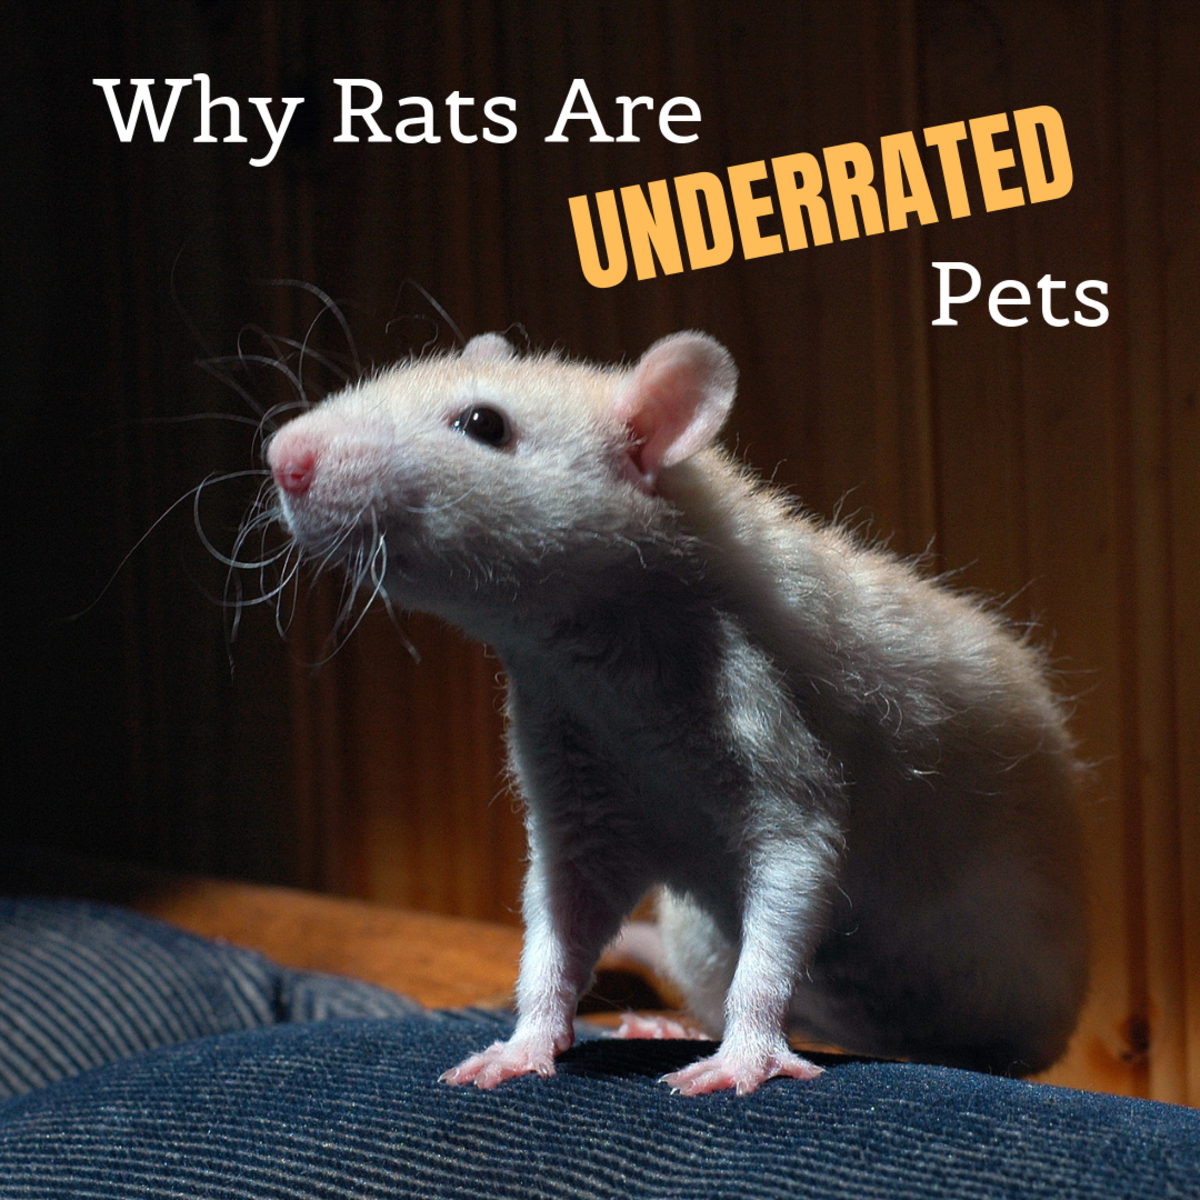 Rats do not deserve their bad reputation. Find out why they're terrific pets!